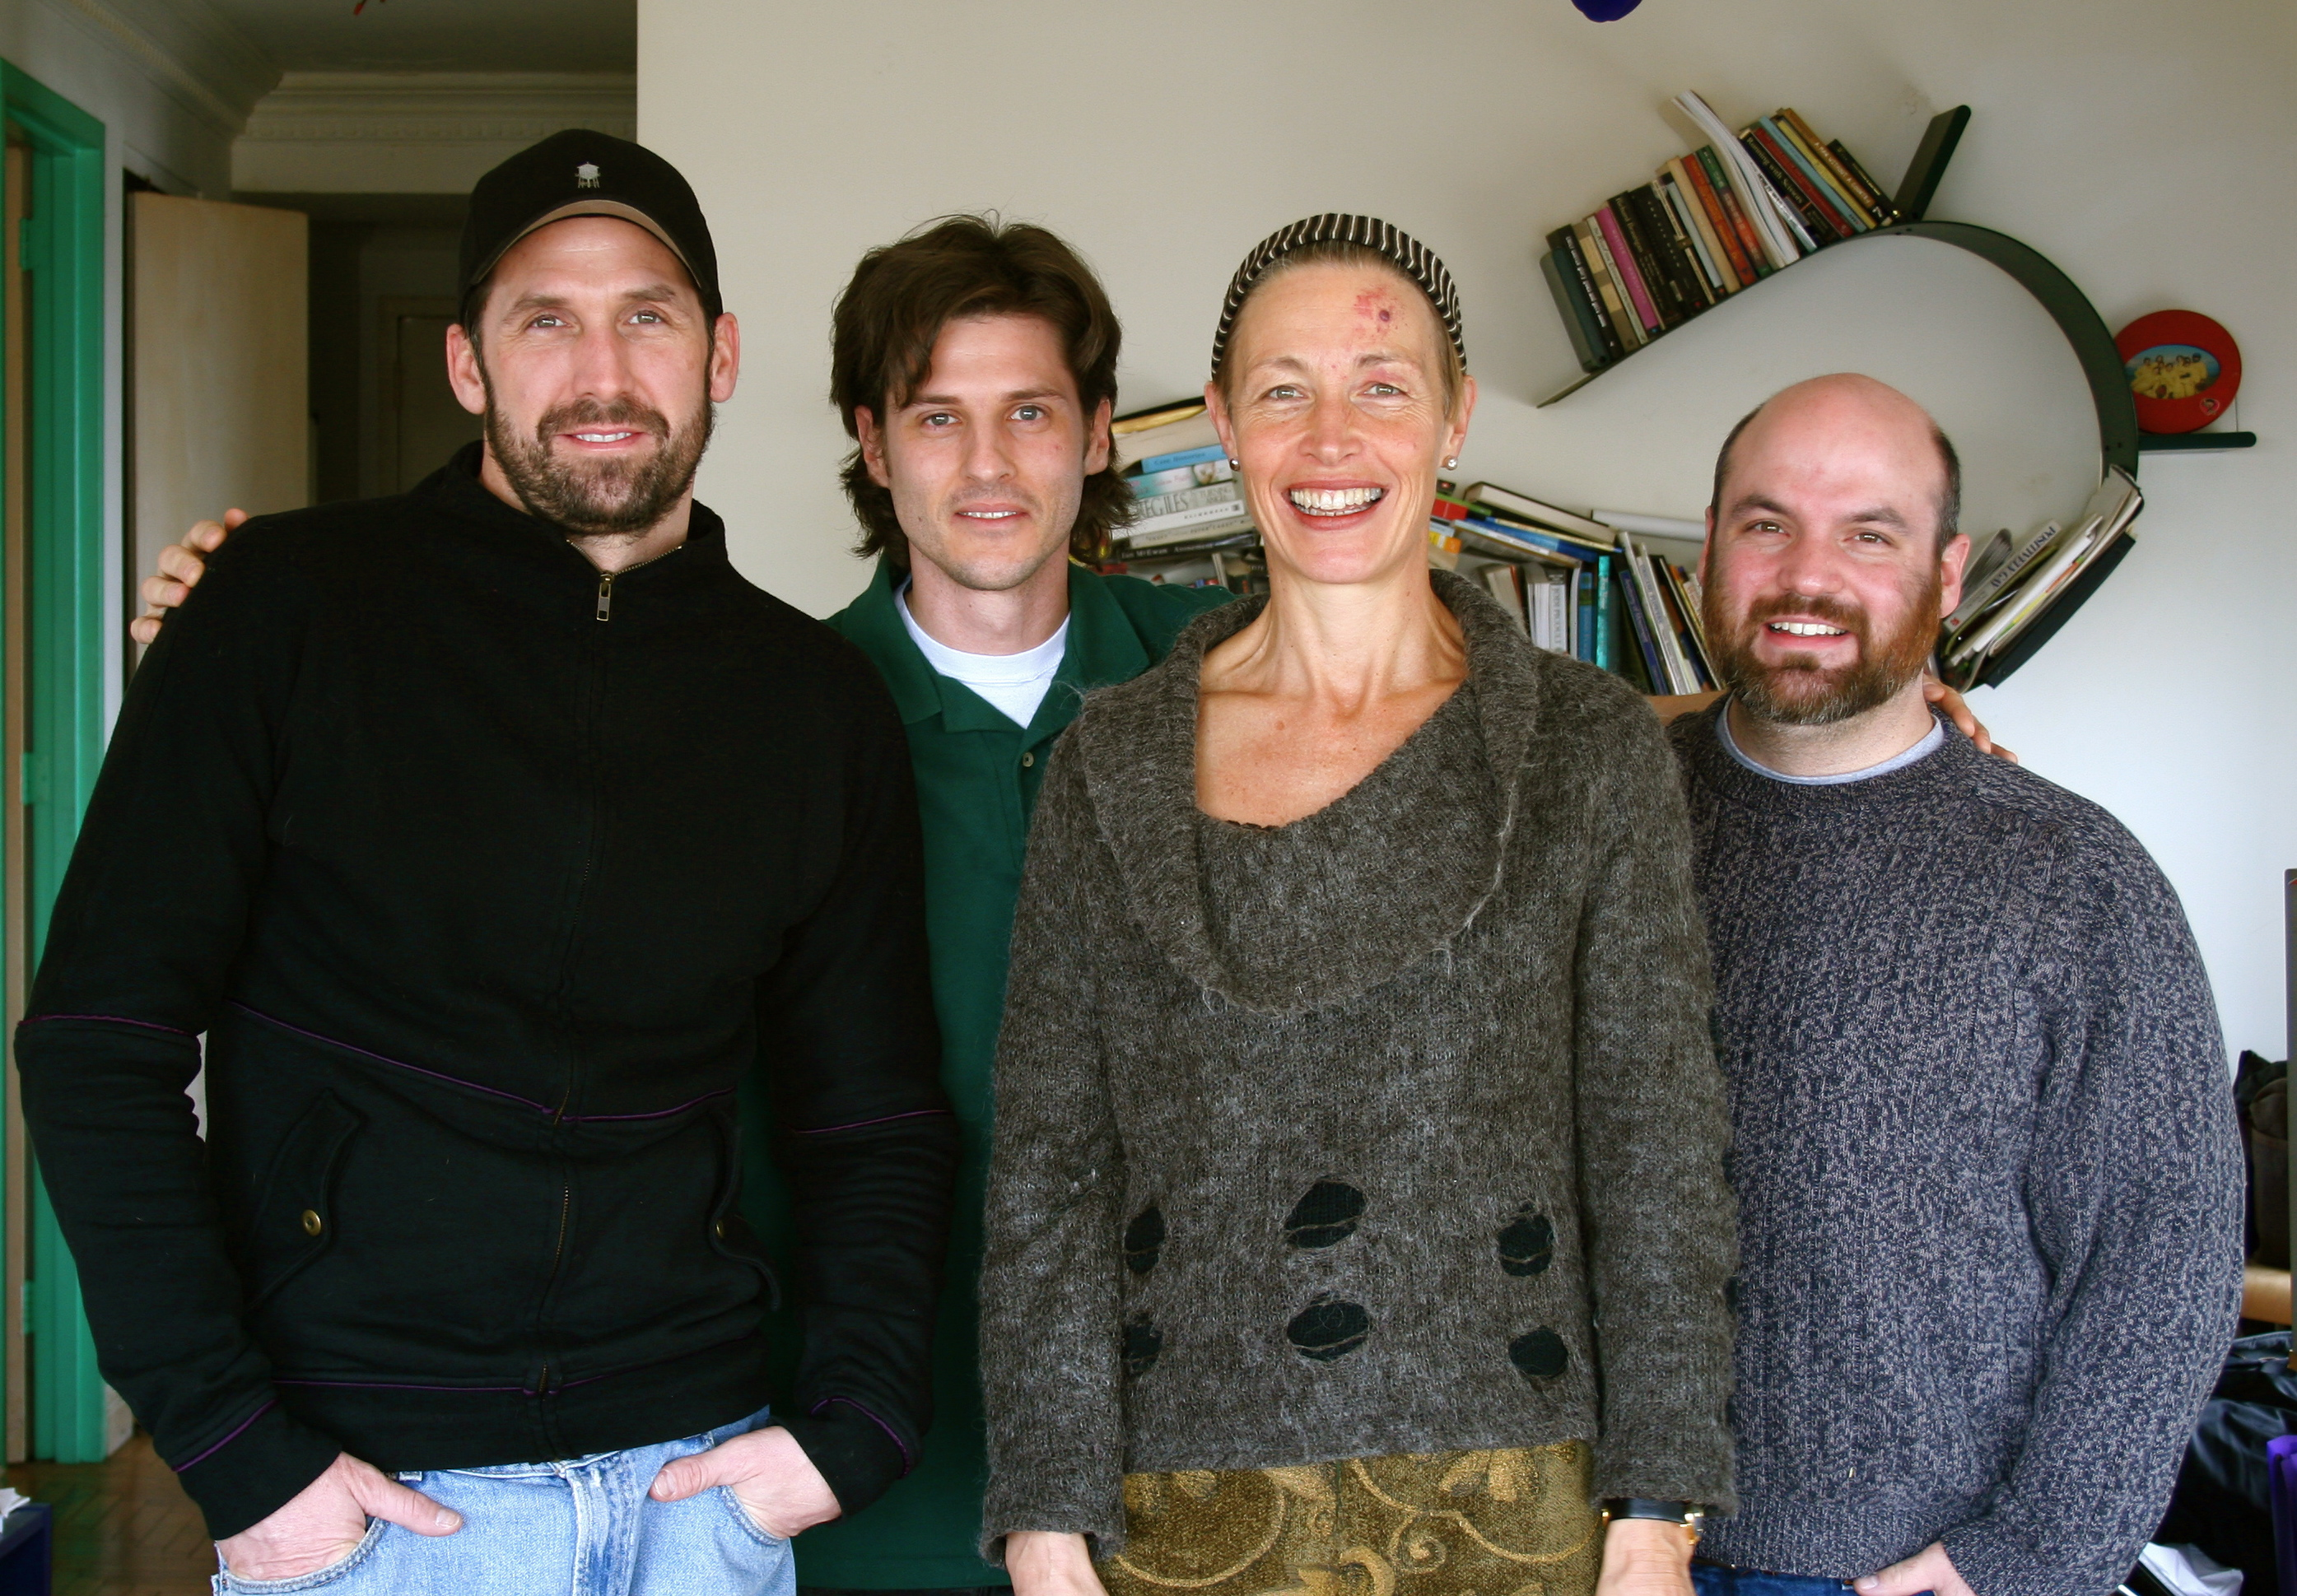 Videographers Chris Cassidy (far left) and Phil Rosensteel (far right) with Steven Fischer and Kirstie Simson. New York City.